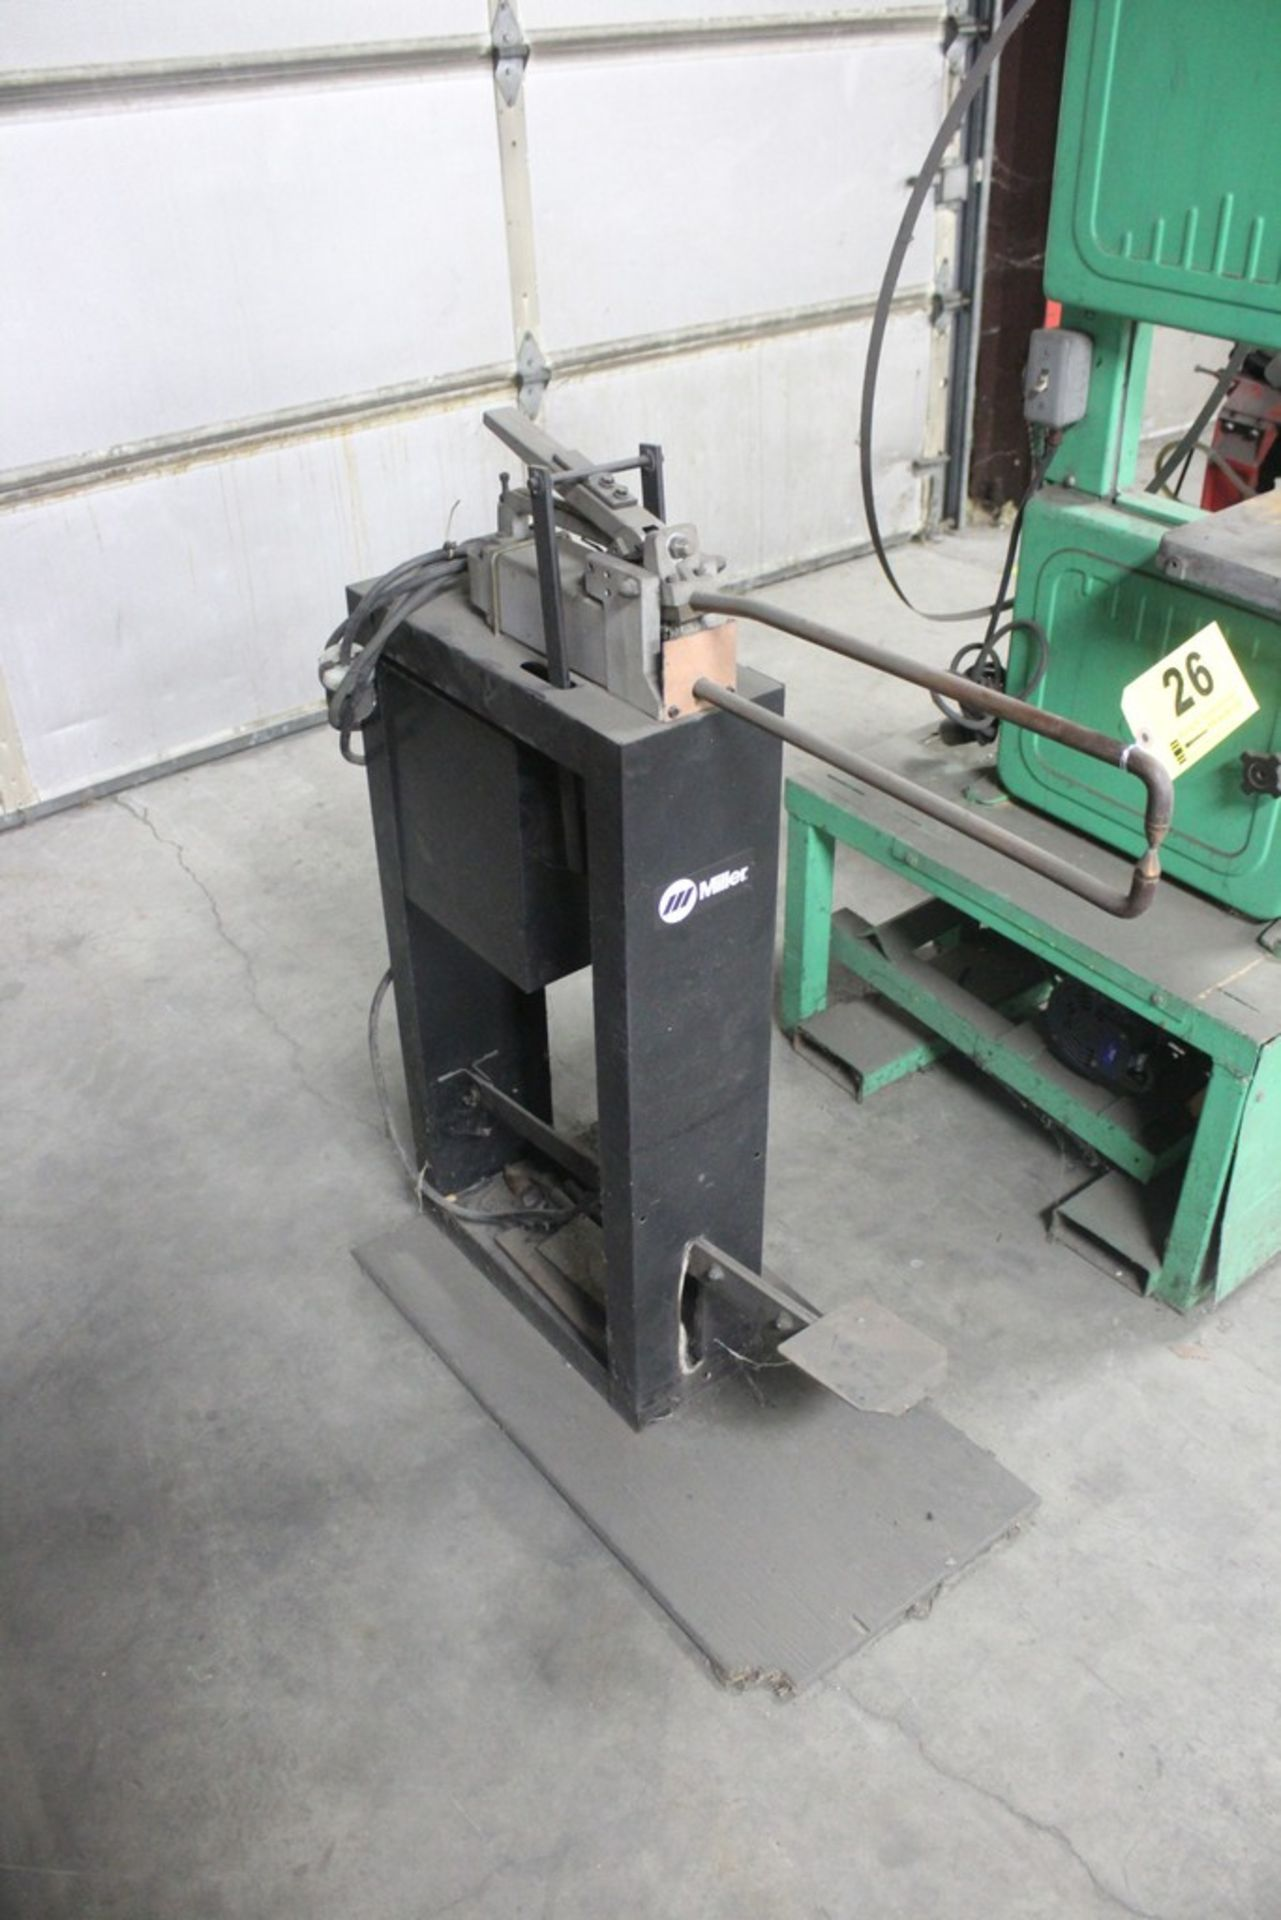 Miller Model MSW-42T Single Phase 1.5 KVA Spot Welder, Serial Number: LA049487